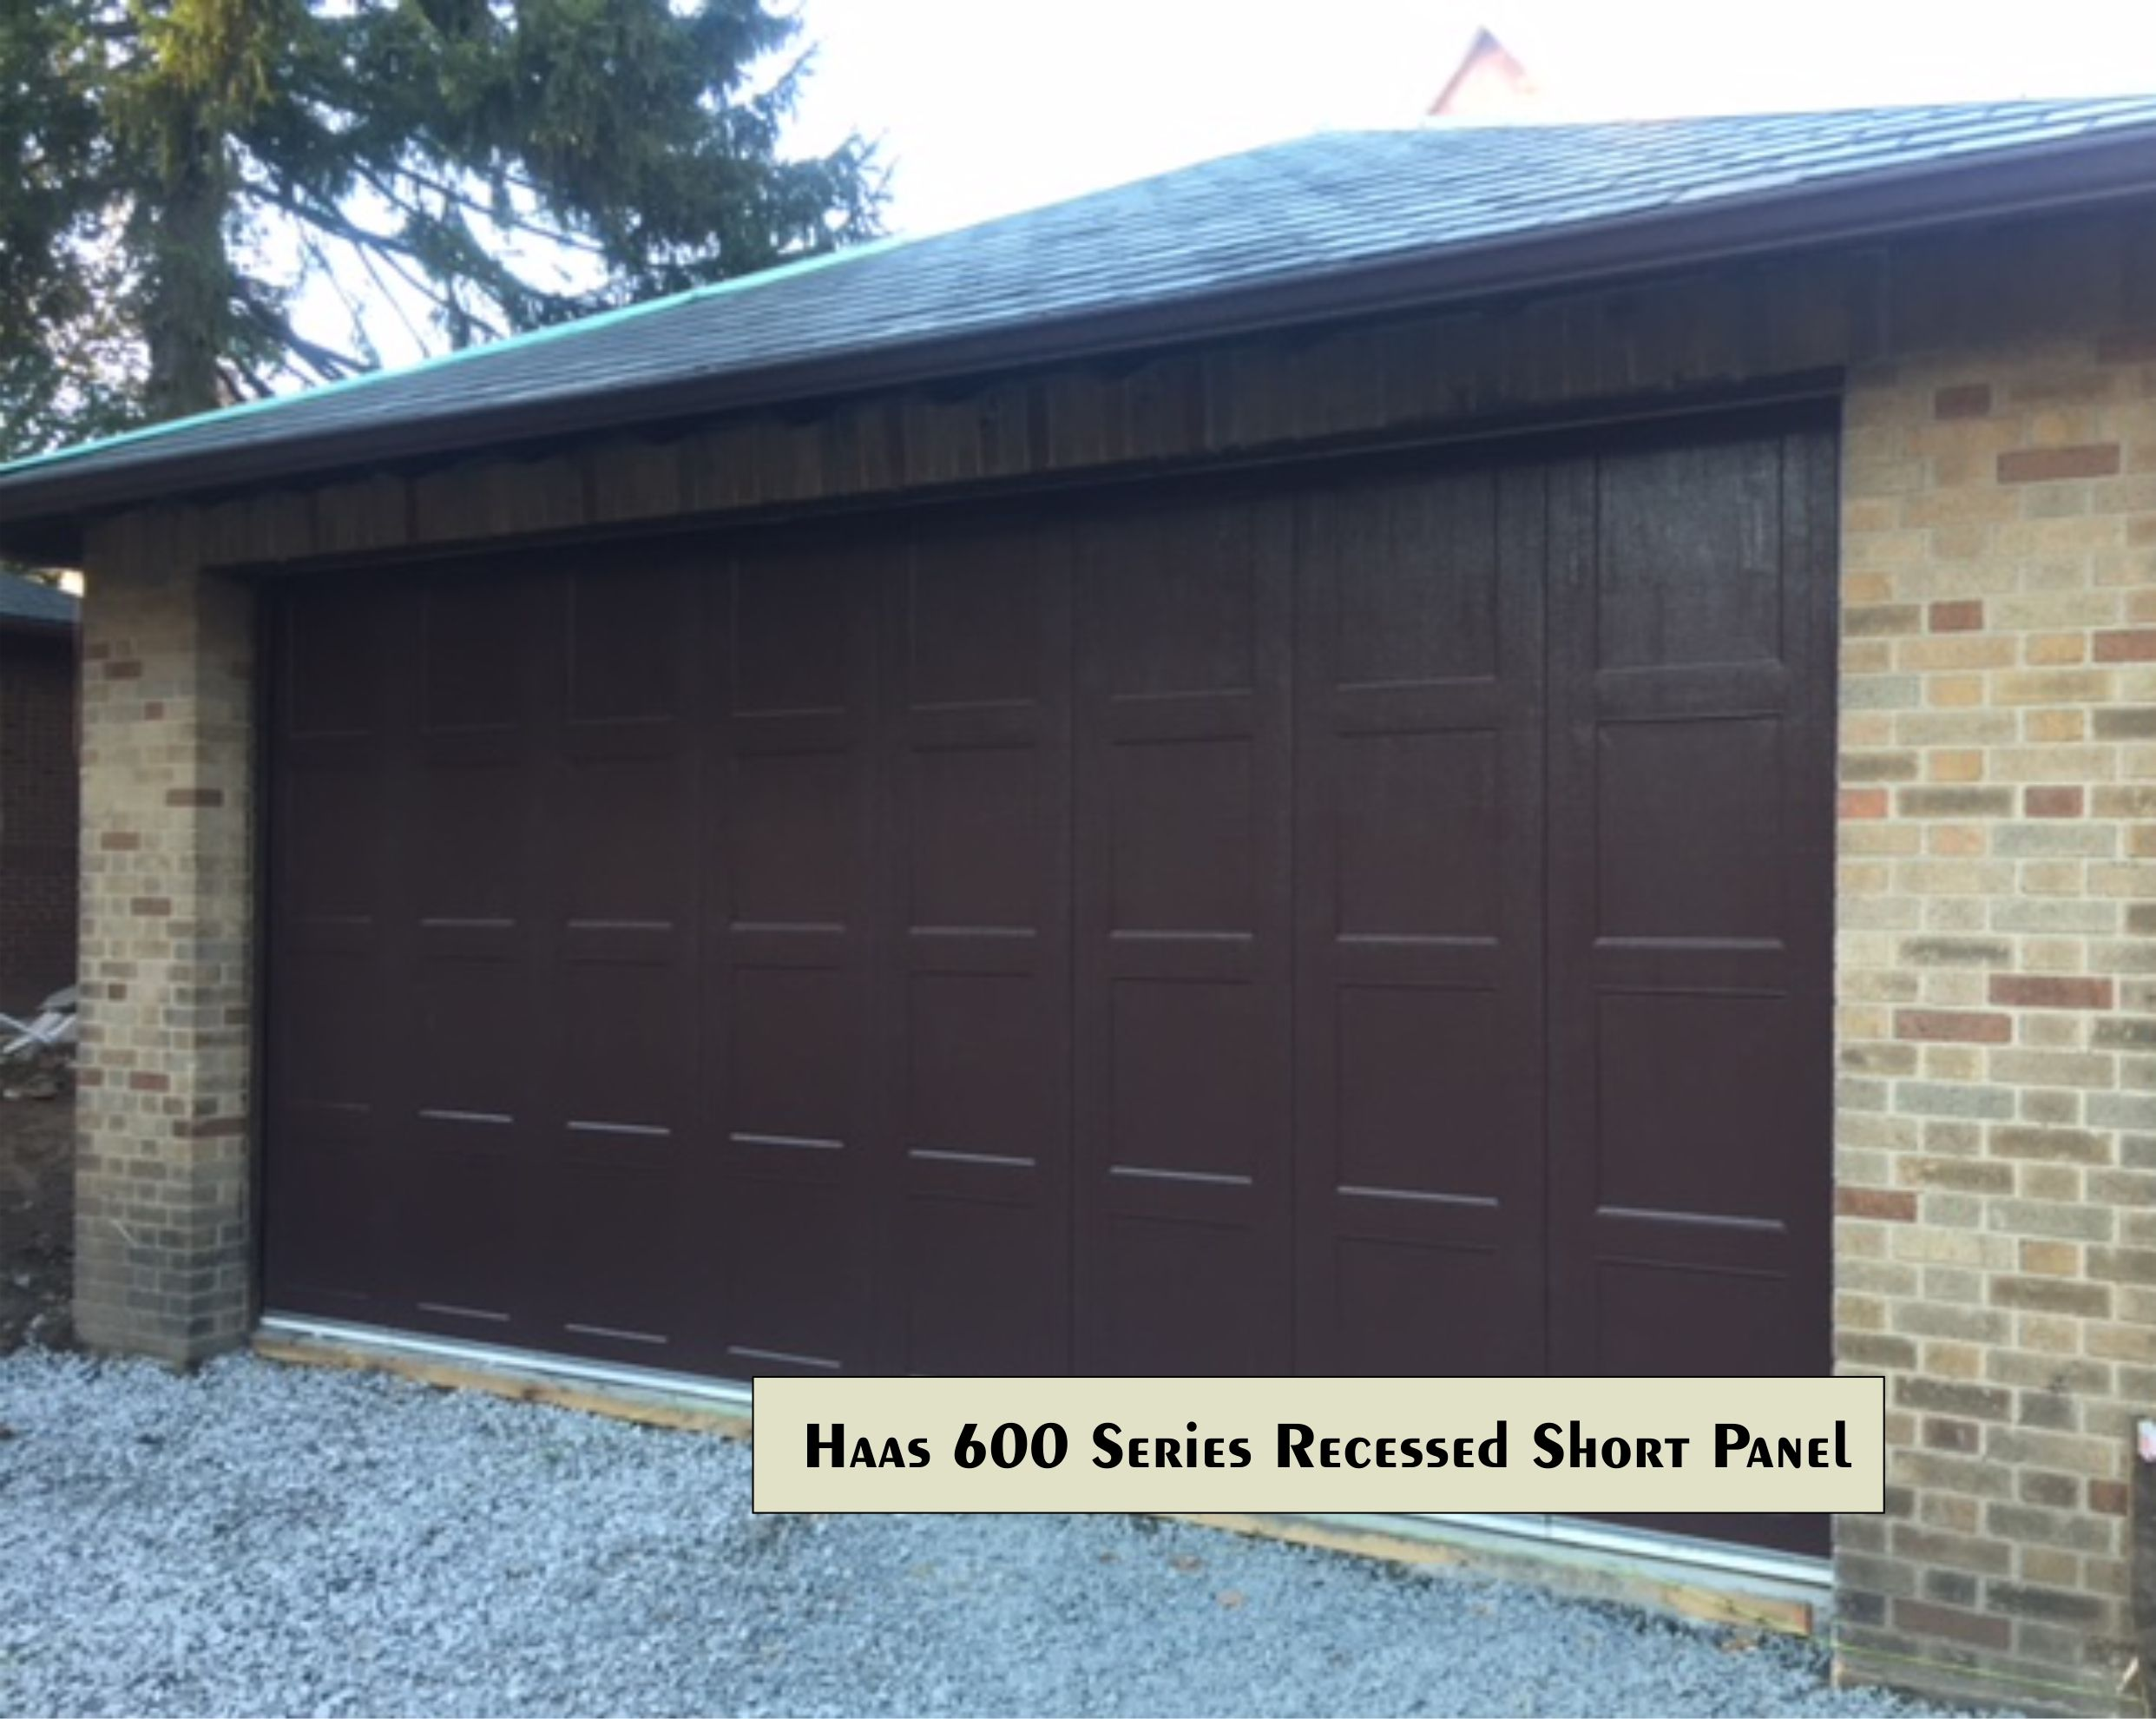 An Example Of A Traditional Recessed Panel Horizontal Garage Door Commonly Called A Sliding Garage Door Available I Garage Doors Sliding Garage Doors Garage